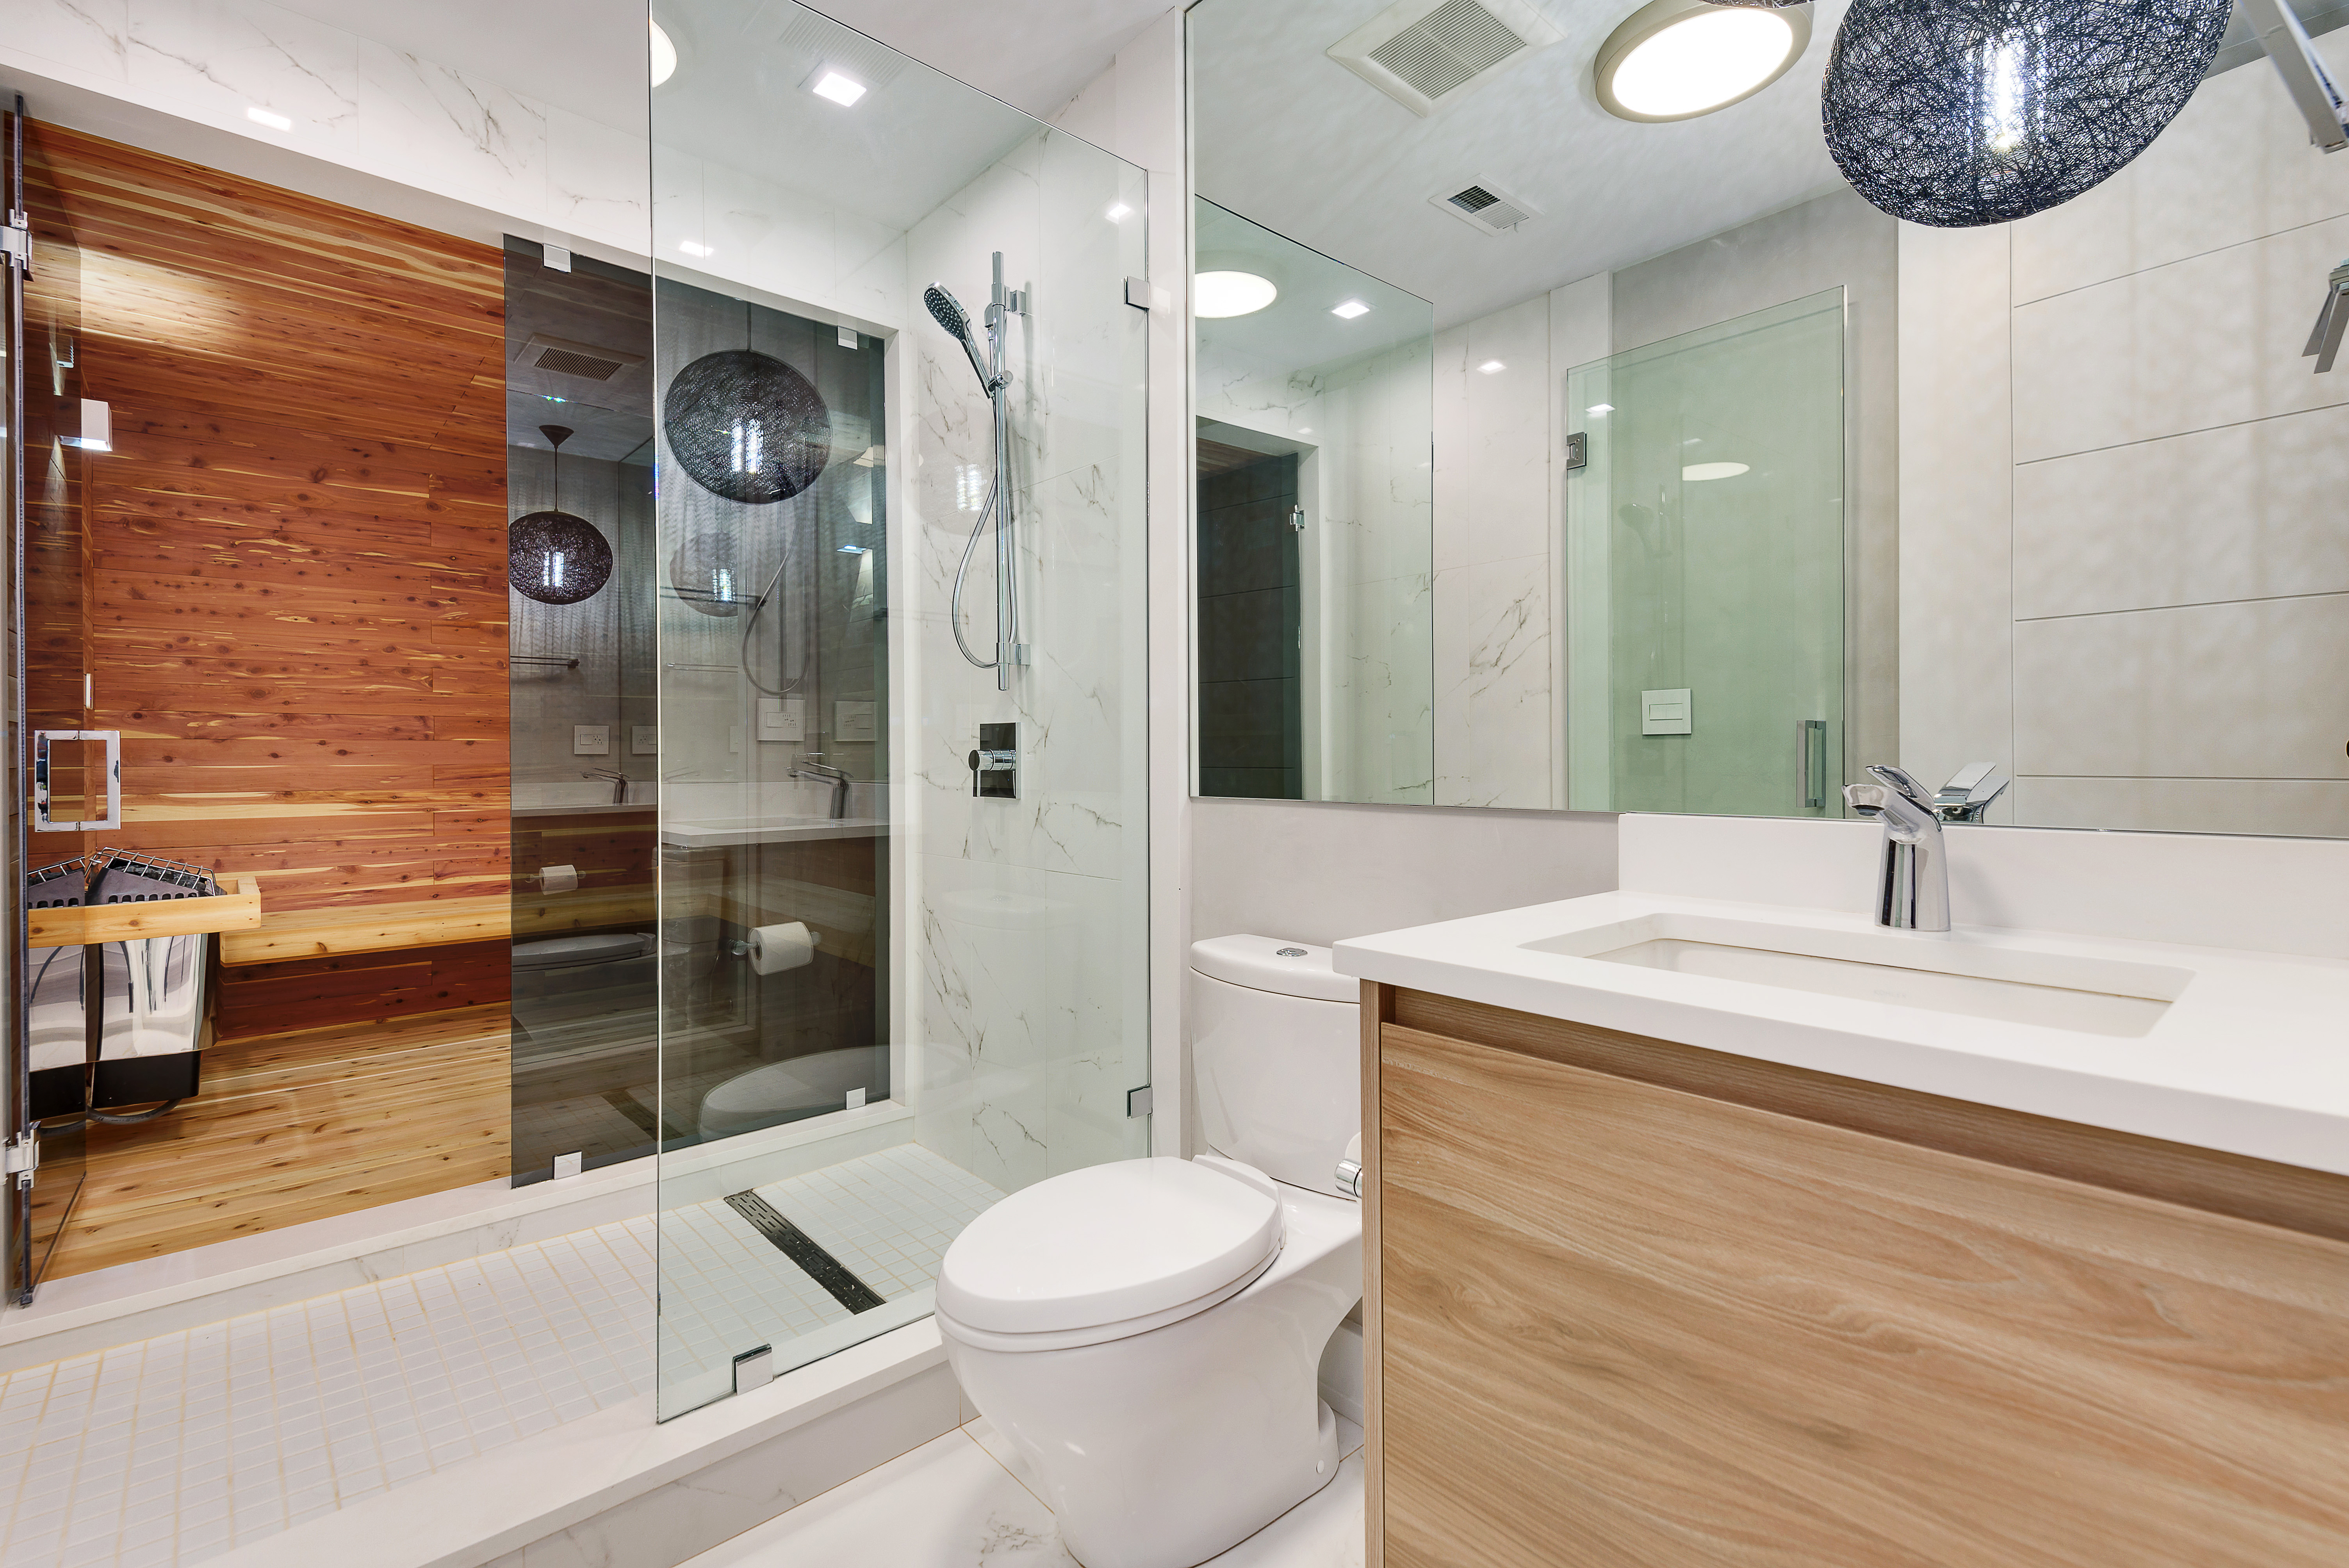 Top 10 General Contractors in Chicago, IL (with Photos) | BuildZoom